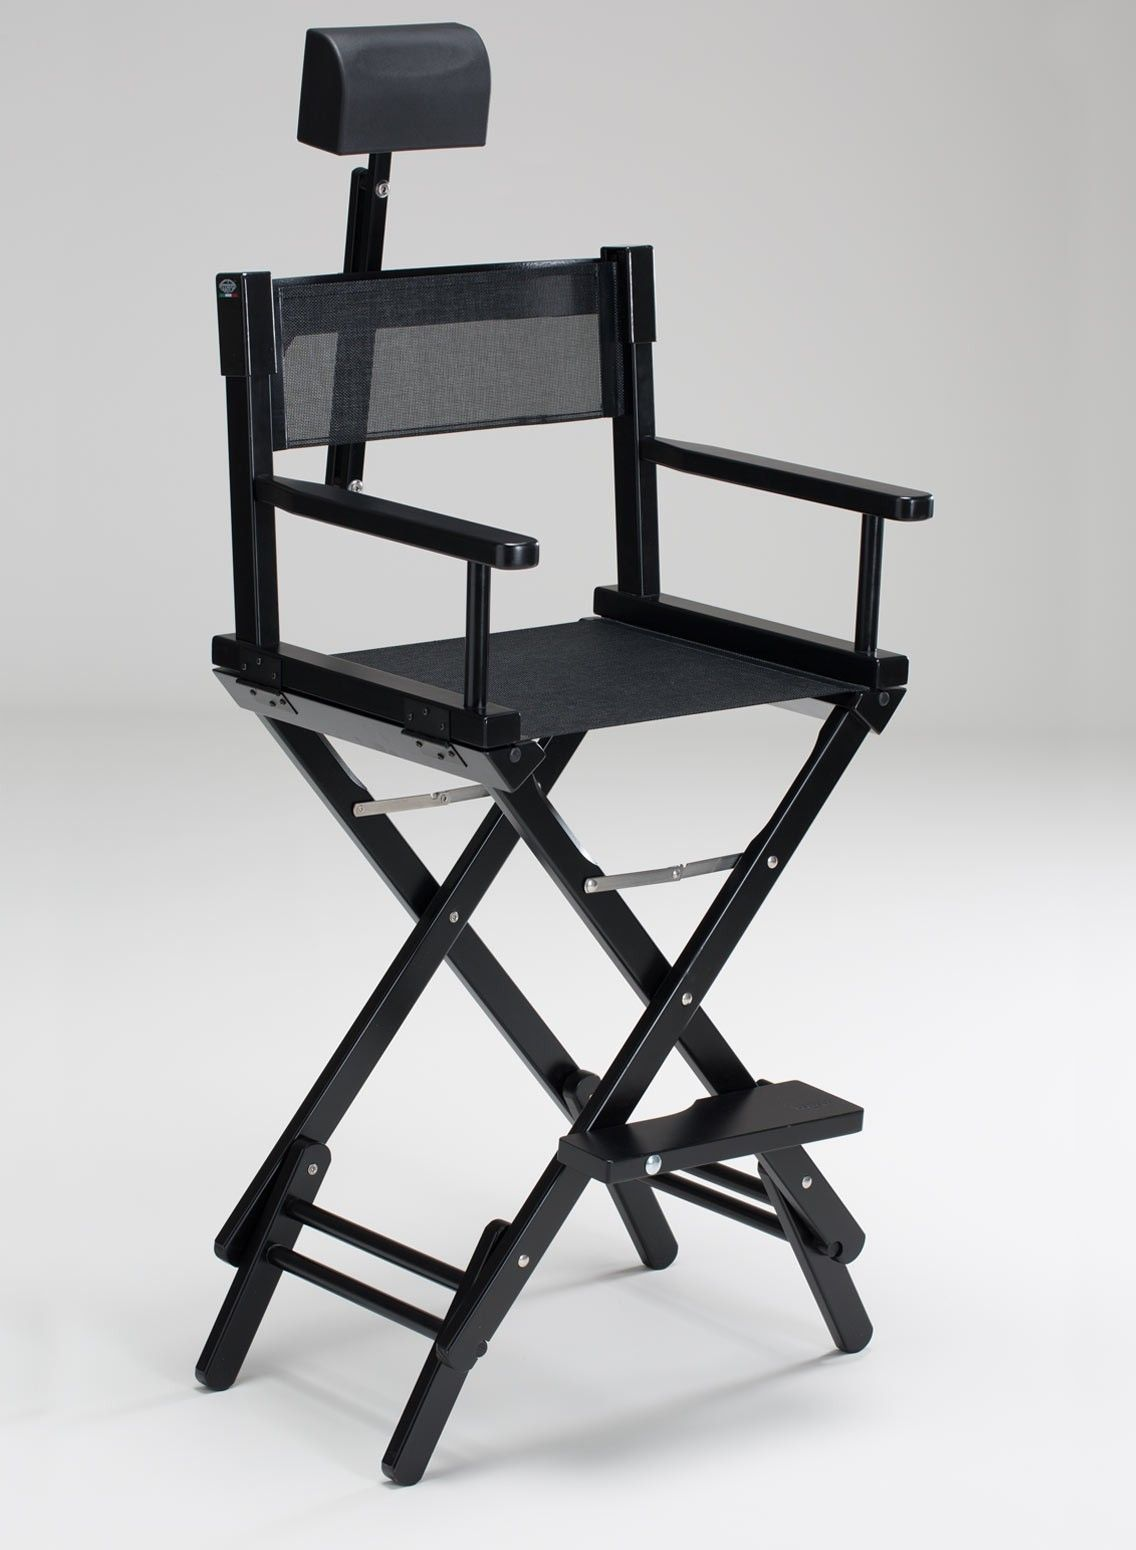 Makeup director chairs. Cantoni for makeup and aesthetic professionals. Dual height portable chair for professional makeup artist complete with the ... & S102N promo pack- Double height makeup artist chair in black wood ...